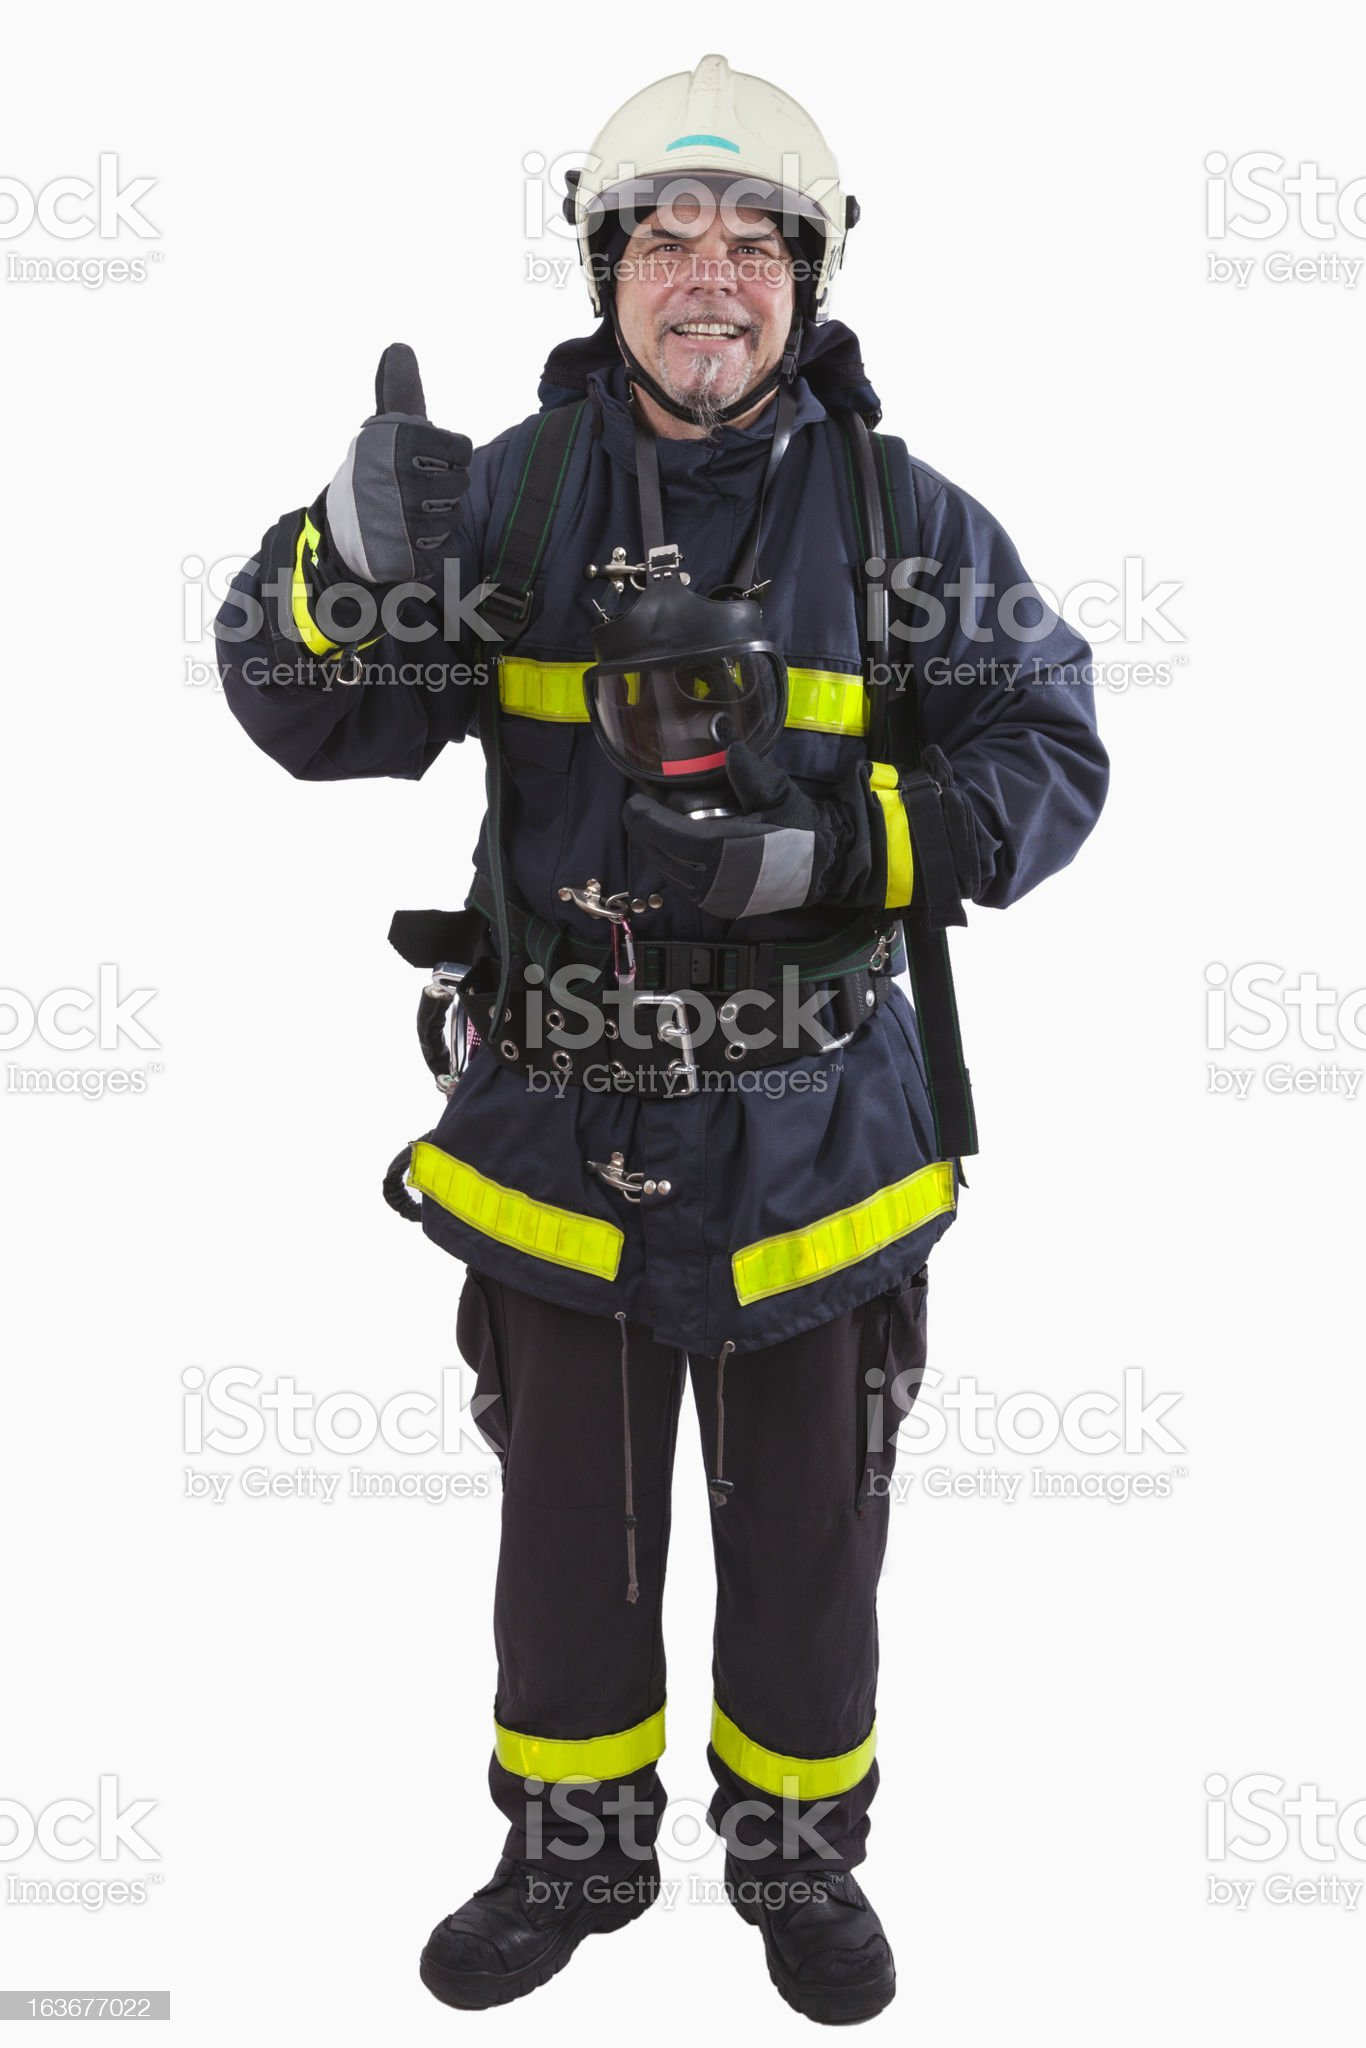 Firefighter - Thumbs Up! royalty-free stock photo